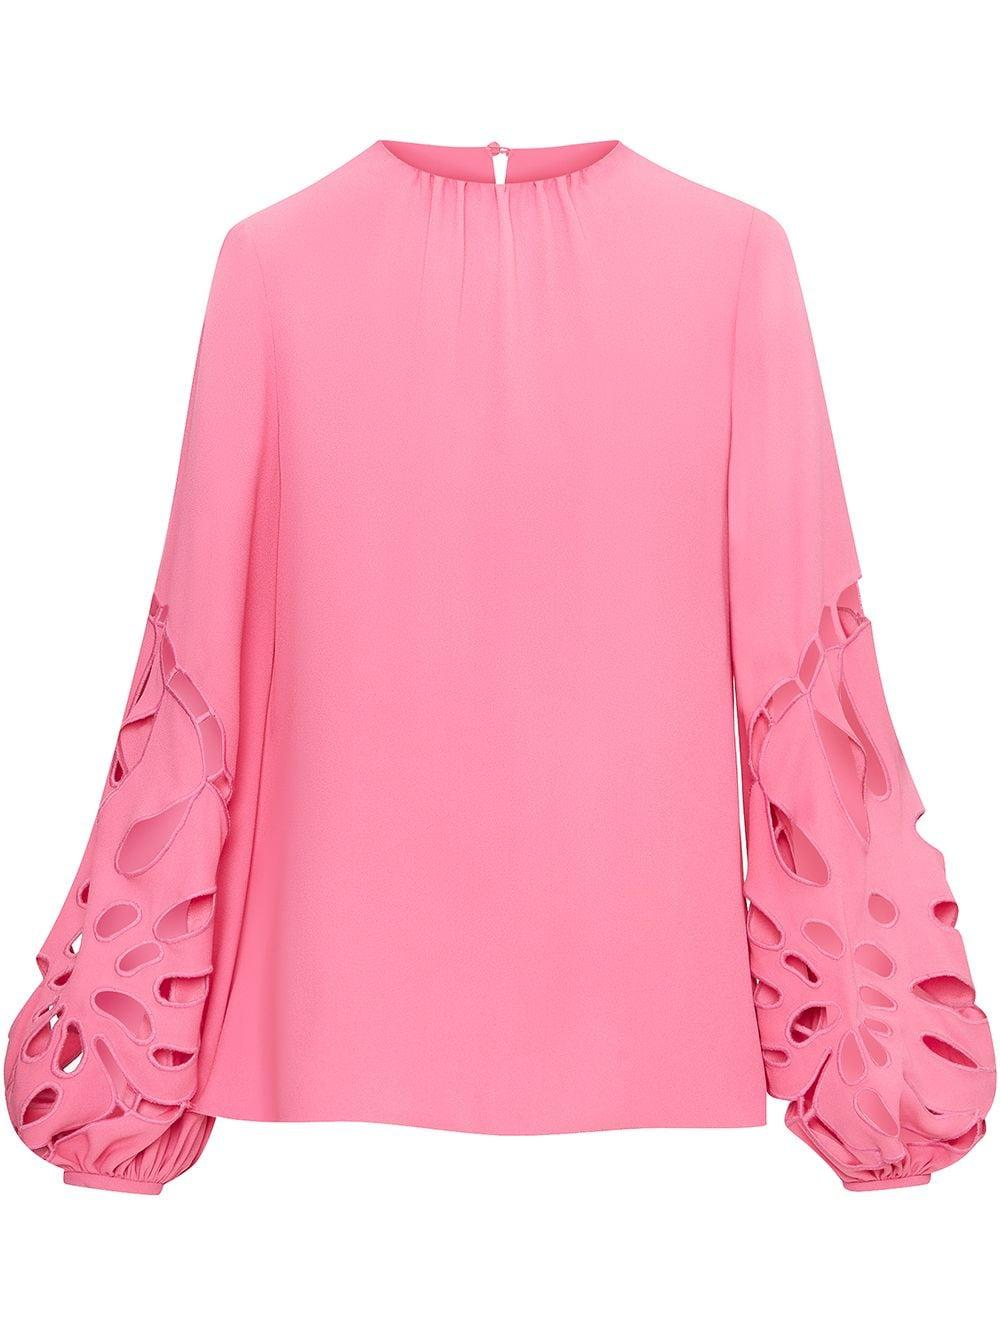 Cut-Out Embroidered Sleeve Blouse